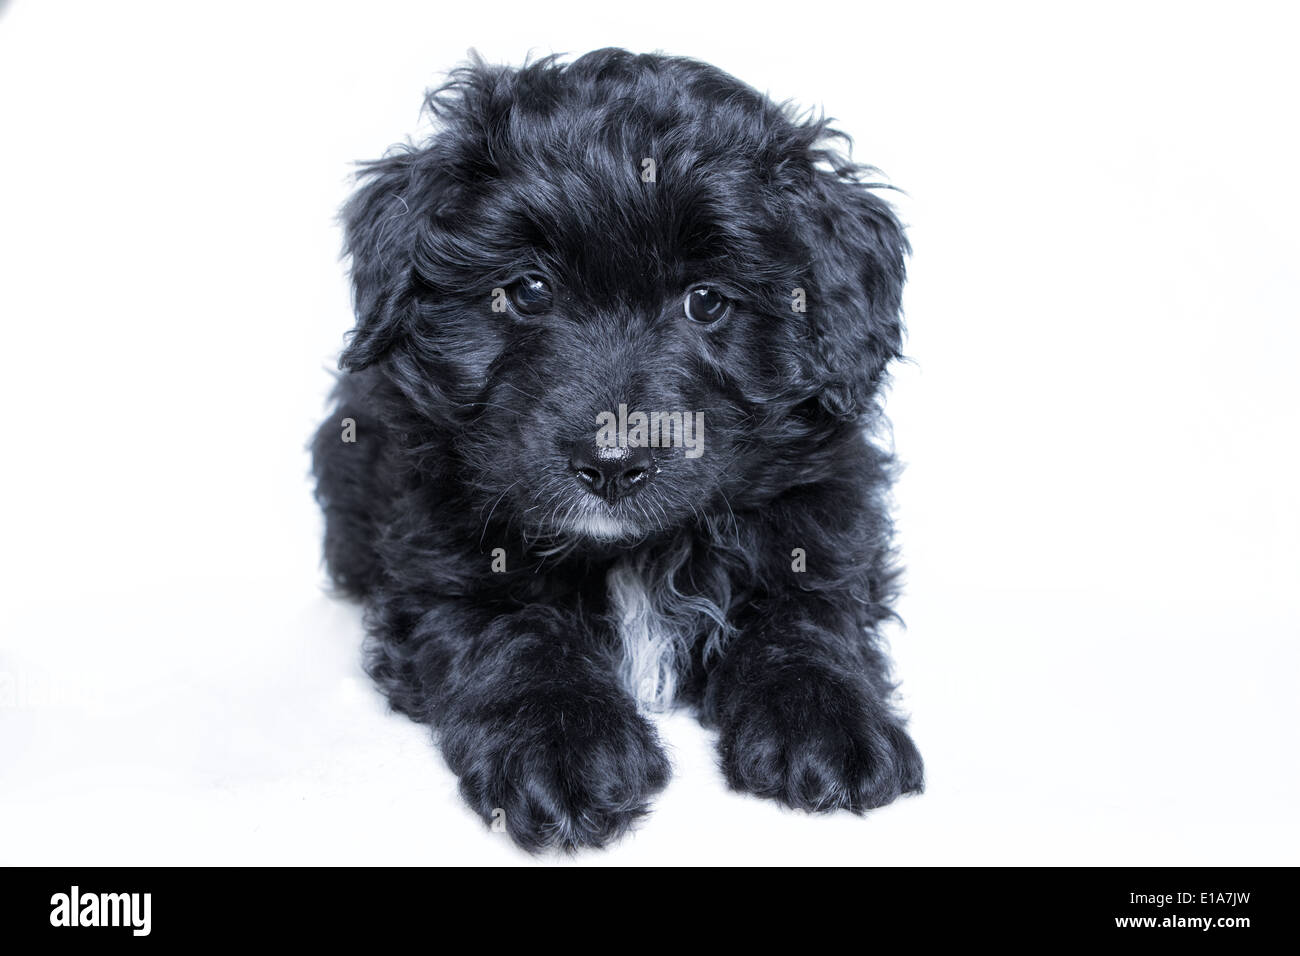 Black Aussie Doodle Puppy Lying Down On White Background